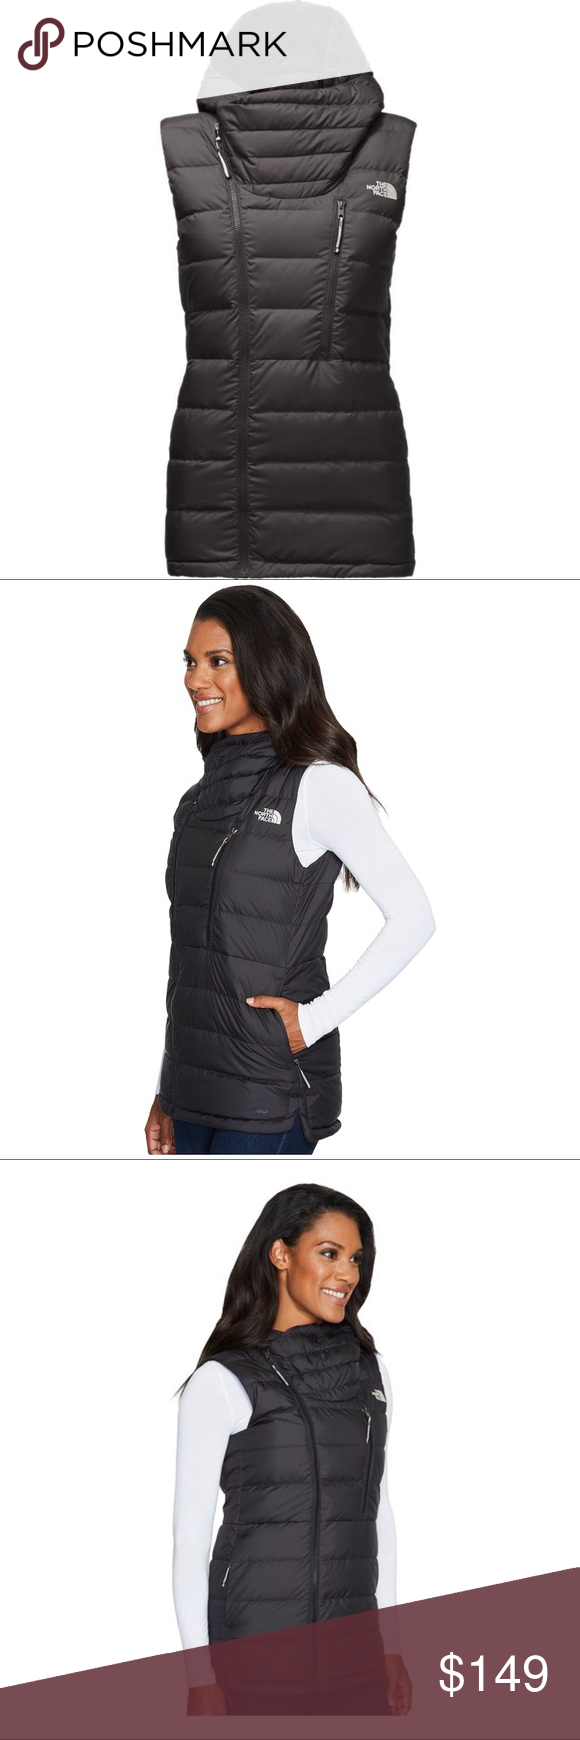 510fd5f87676 New The North Face Women s Niche Vest Hooded Down Brand new